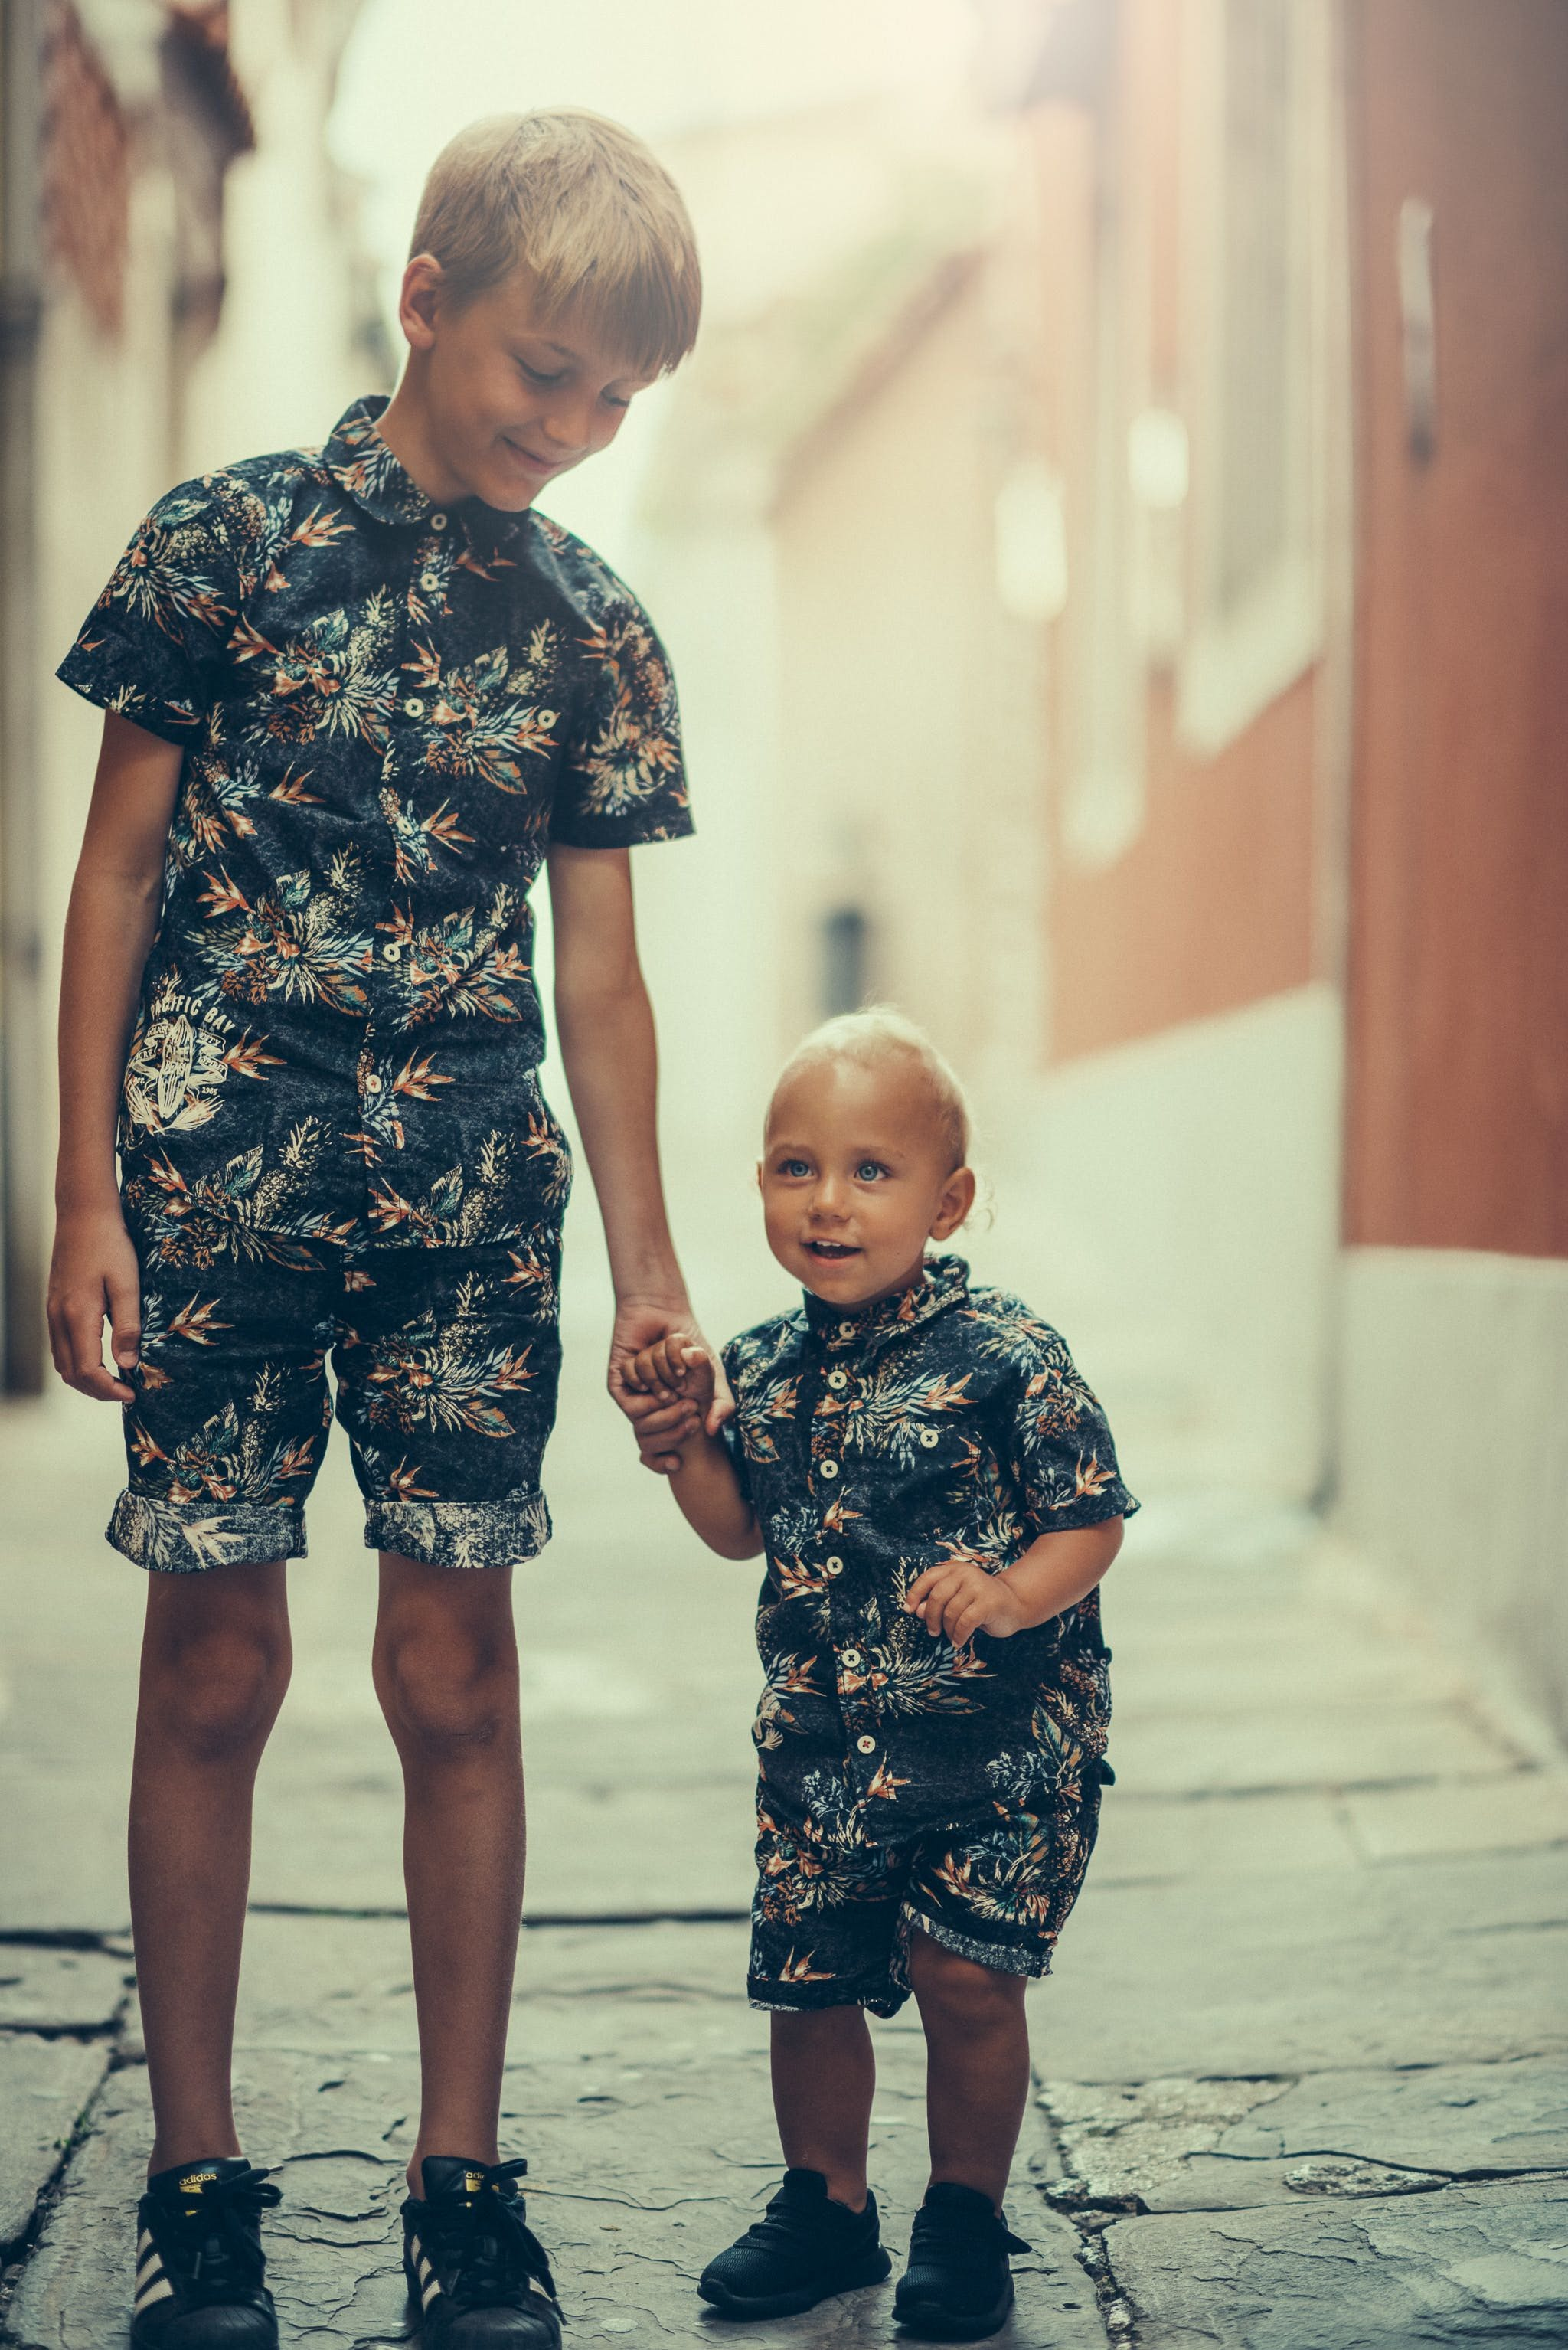 Selective Focus Photography of Boy Holding Child's Hand